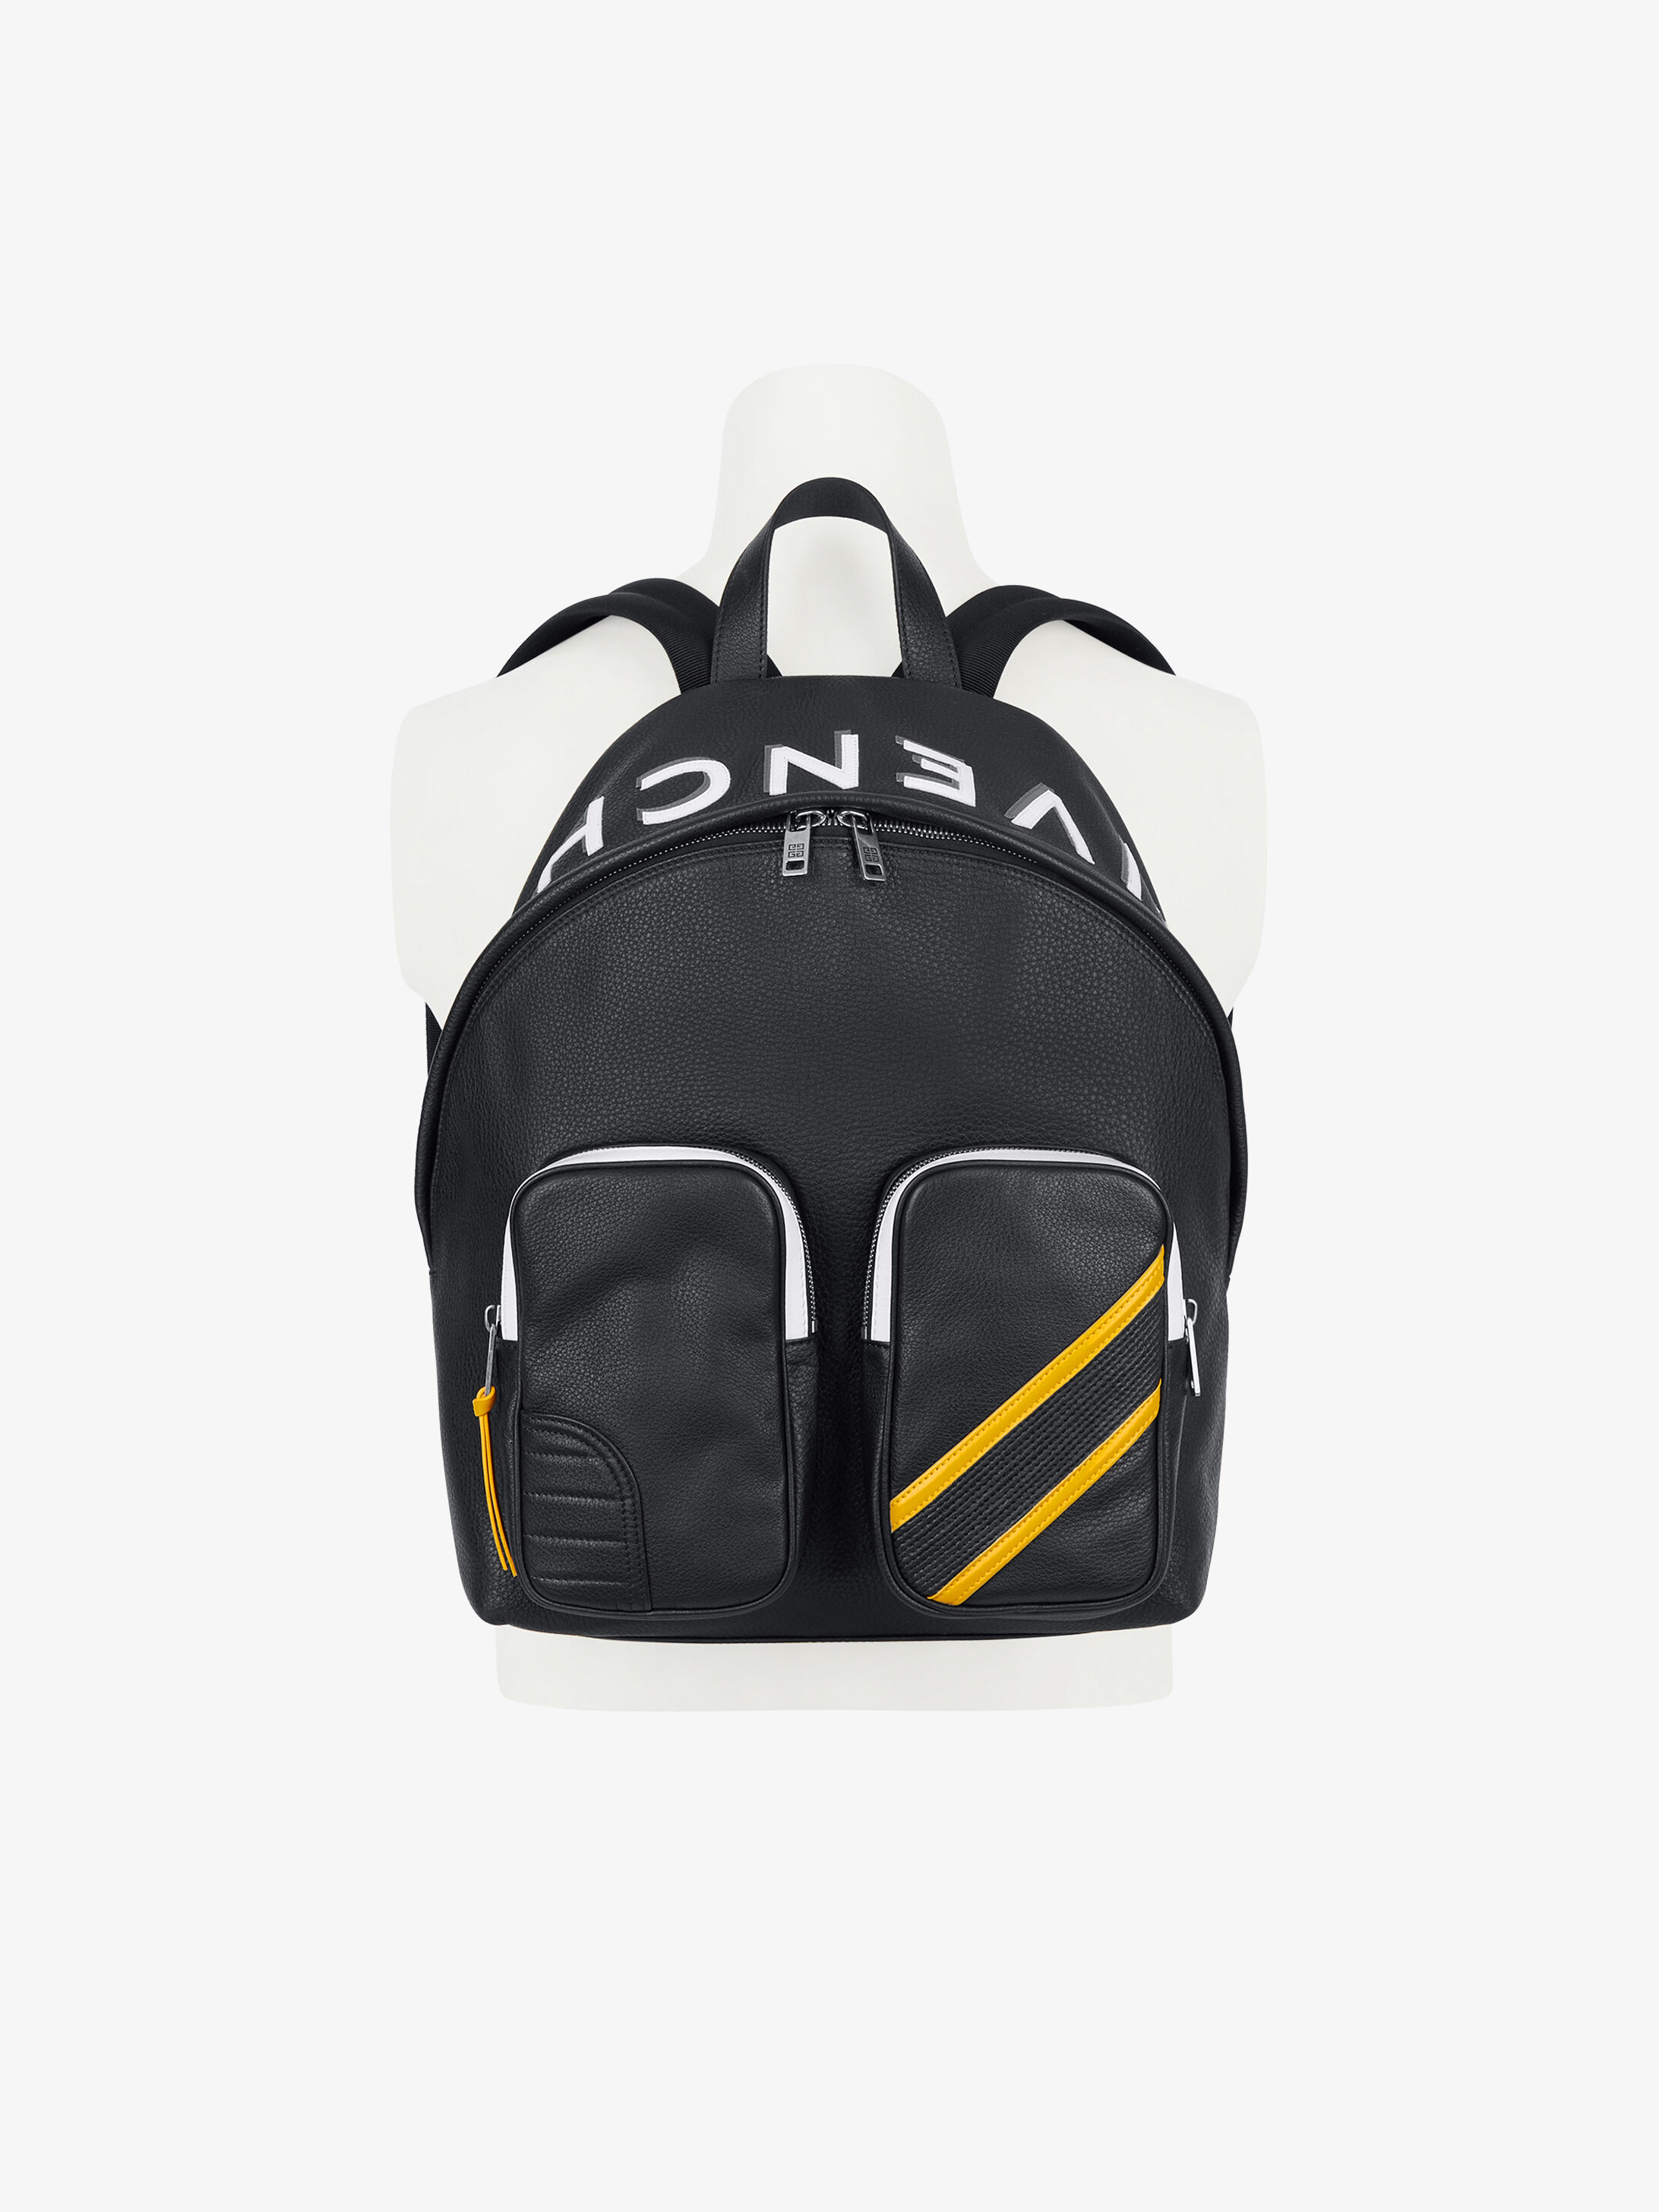 95b06b80e0 Men s Backpacks collection by Givenchy.